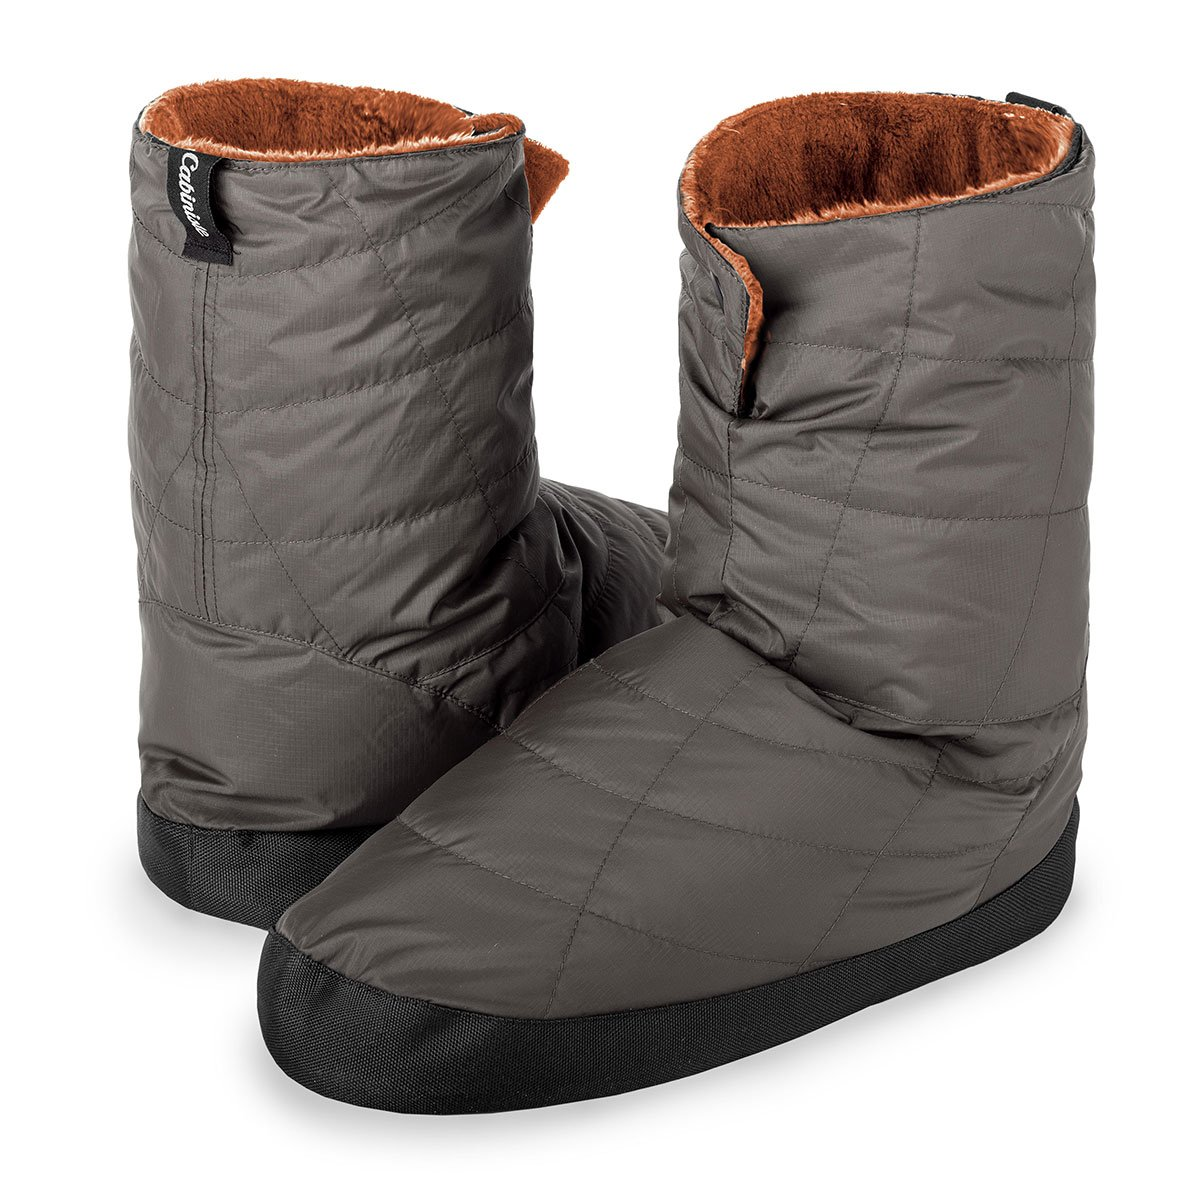 Cabiniste Men's Down Insulated Bootie (Medium, Pewter/Copper) by Cabiniste (Image #2)